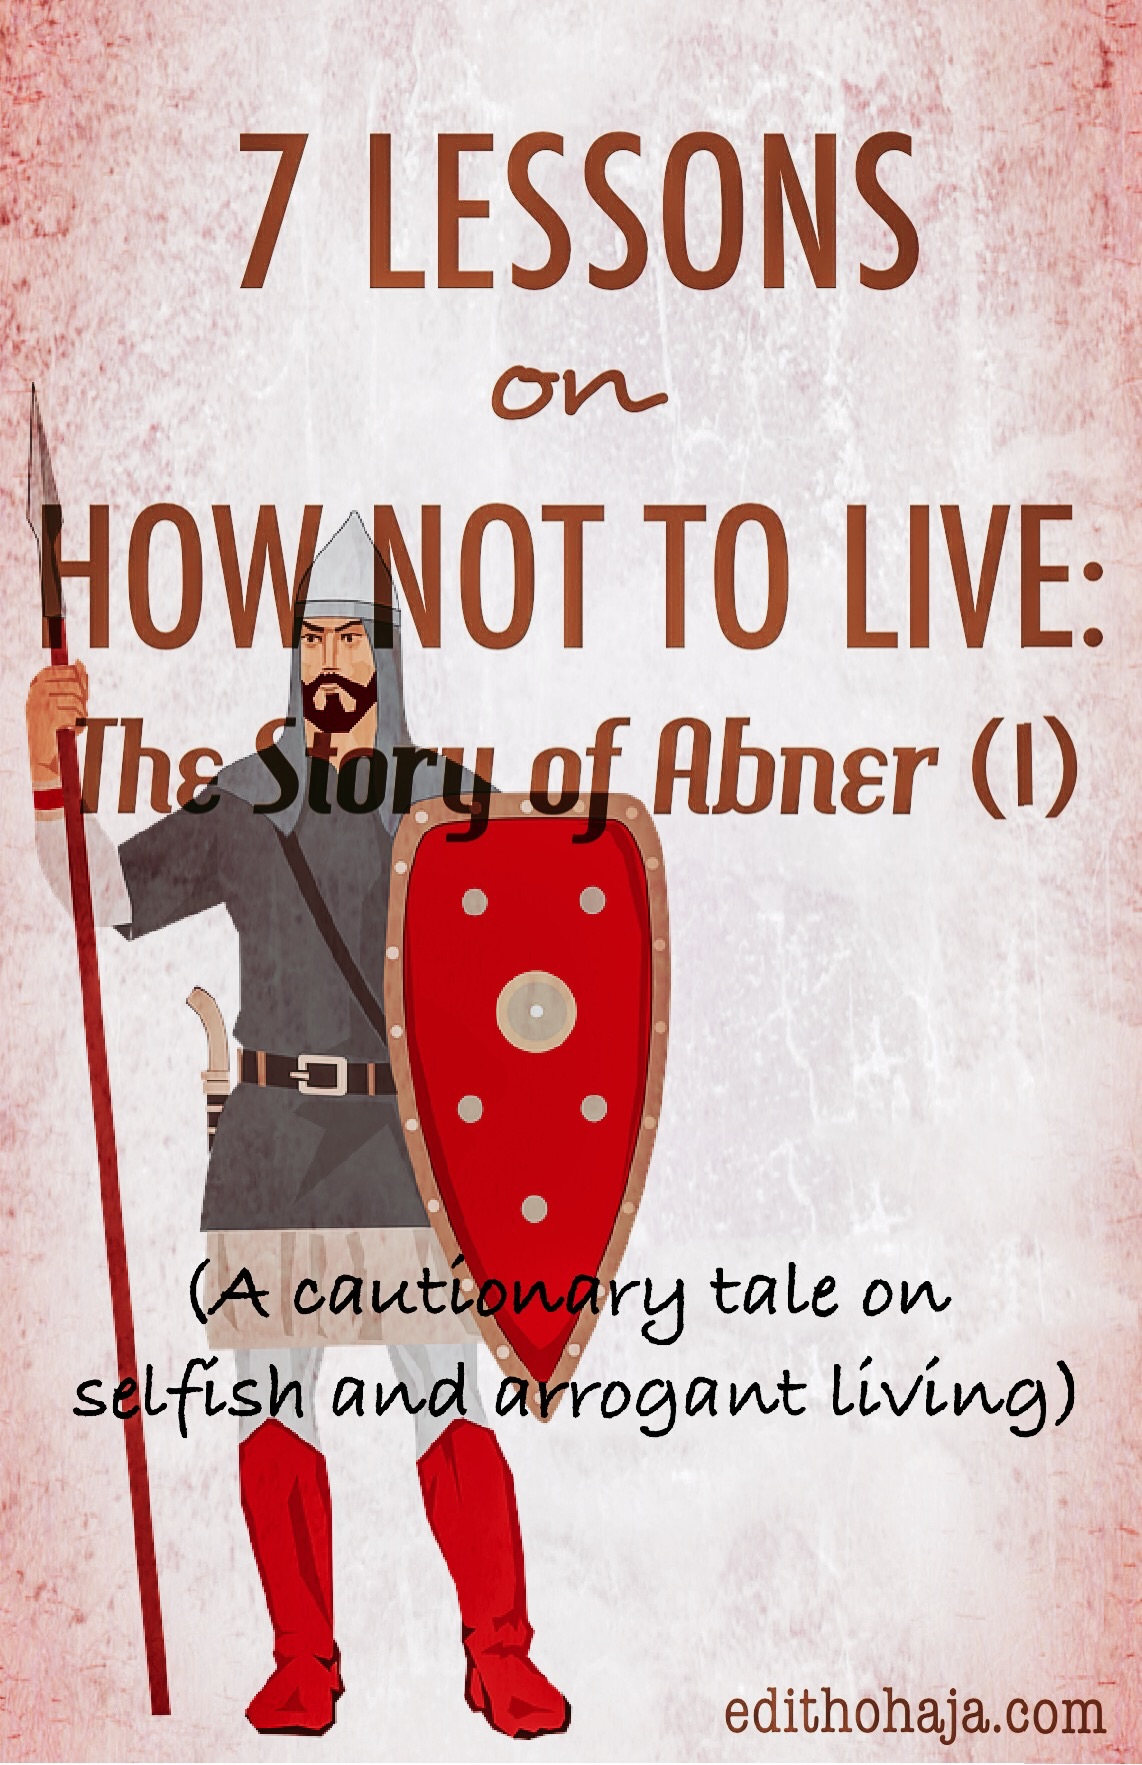 7 LESSONS ON HOW NOT TO LIVE: THE STORY OF ABNER (I)